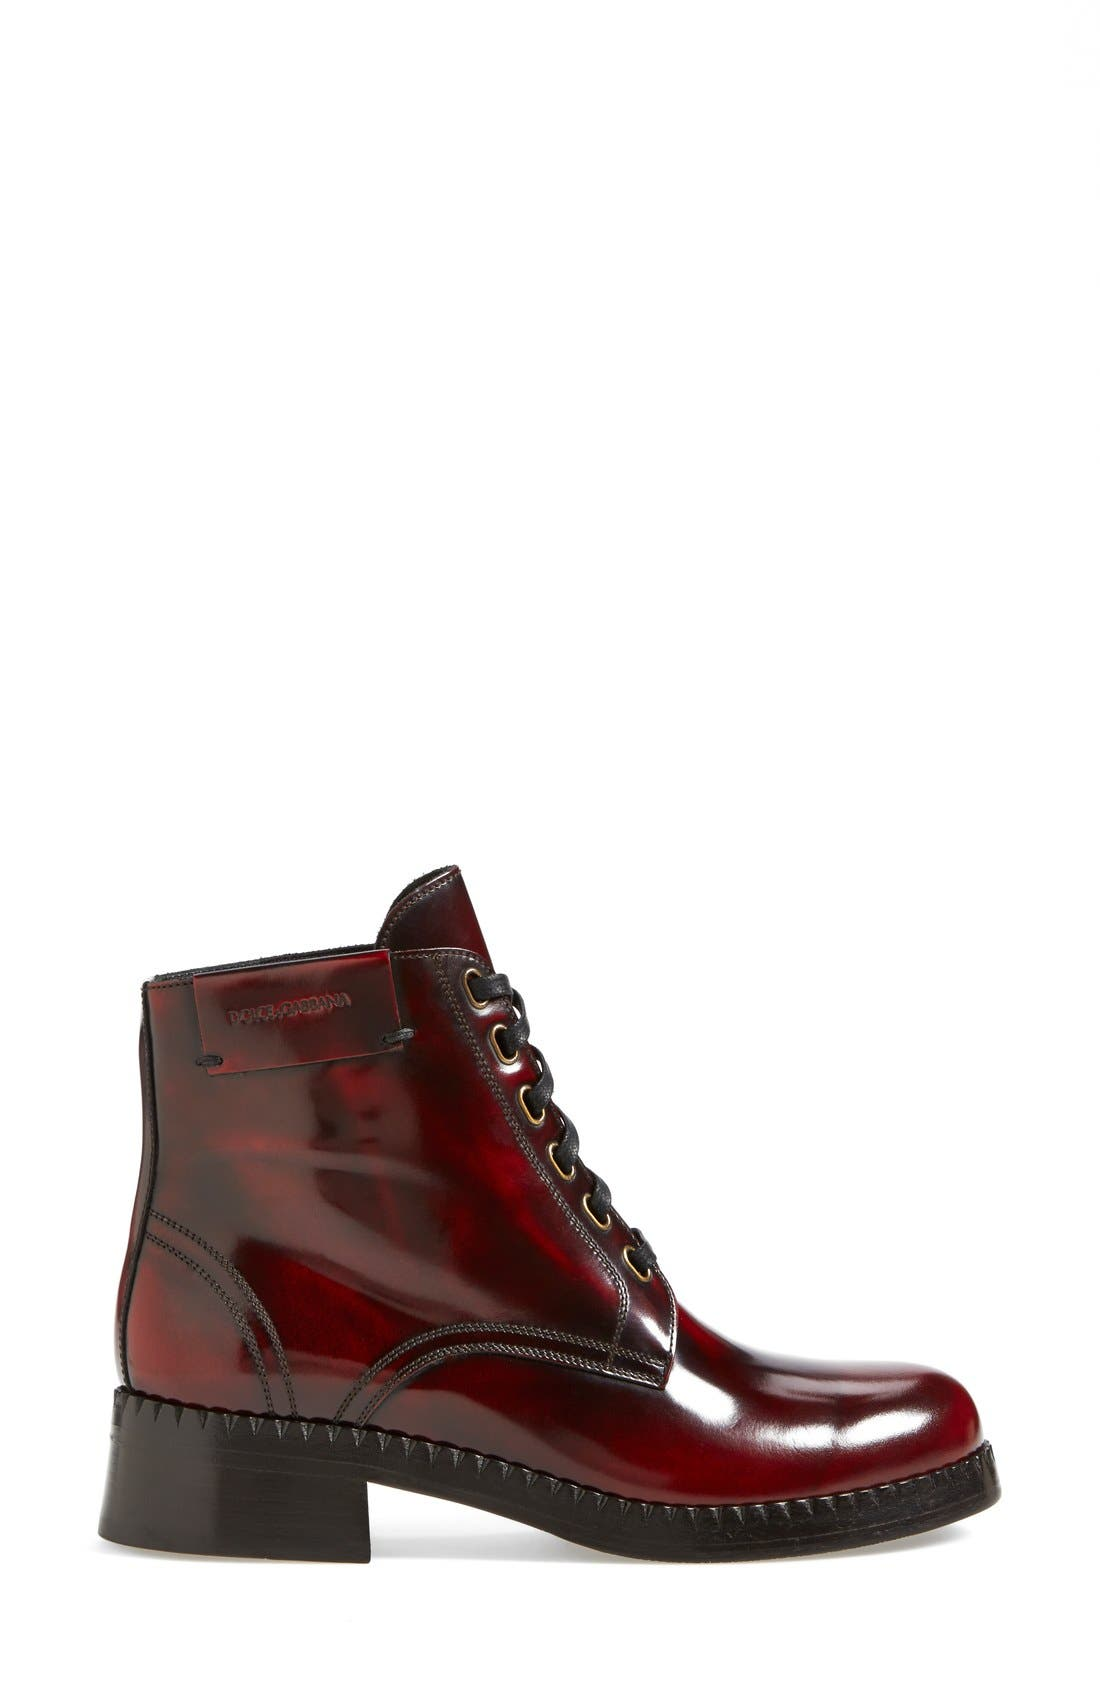 Alternate Image 4  - Dolce&Gabbana Lace-Up Ankle Boot (Women)